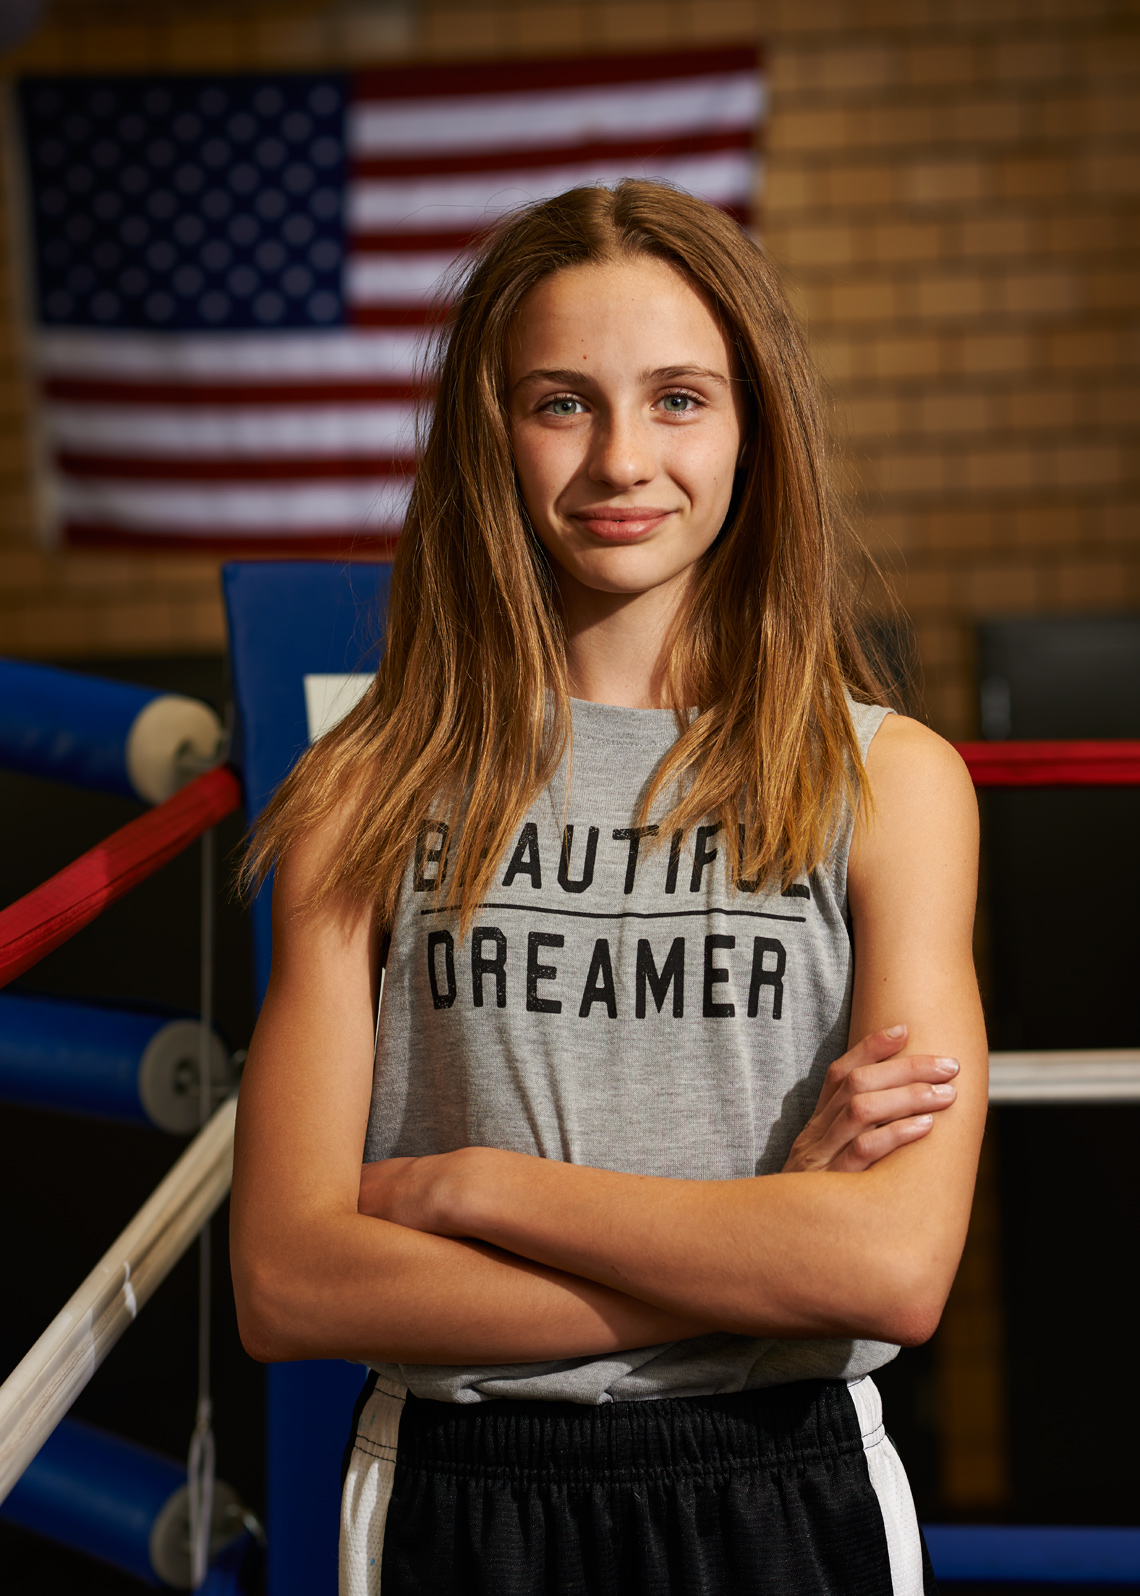 Beautiful Dreamer Caucasian Teen Female Boxer